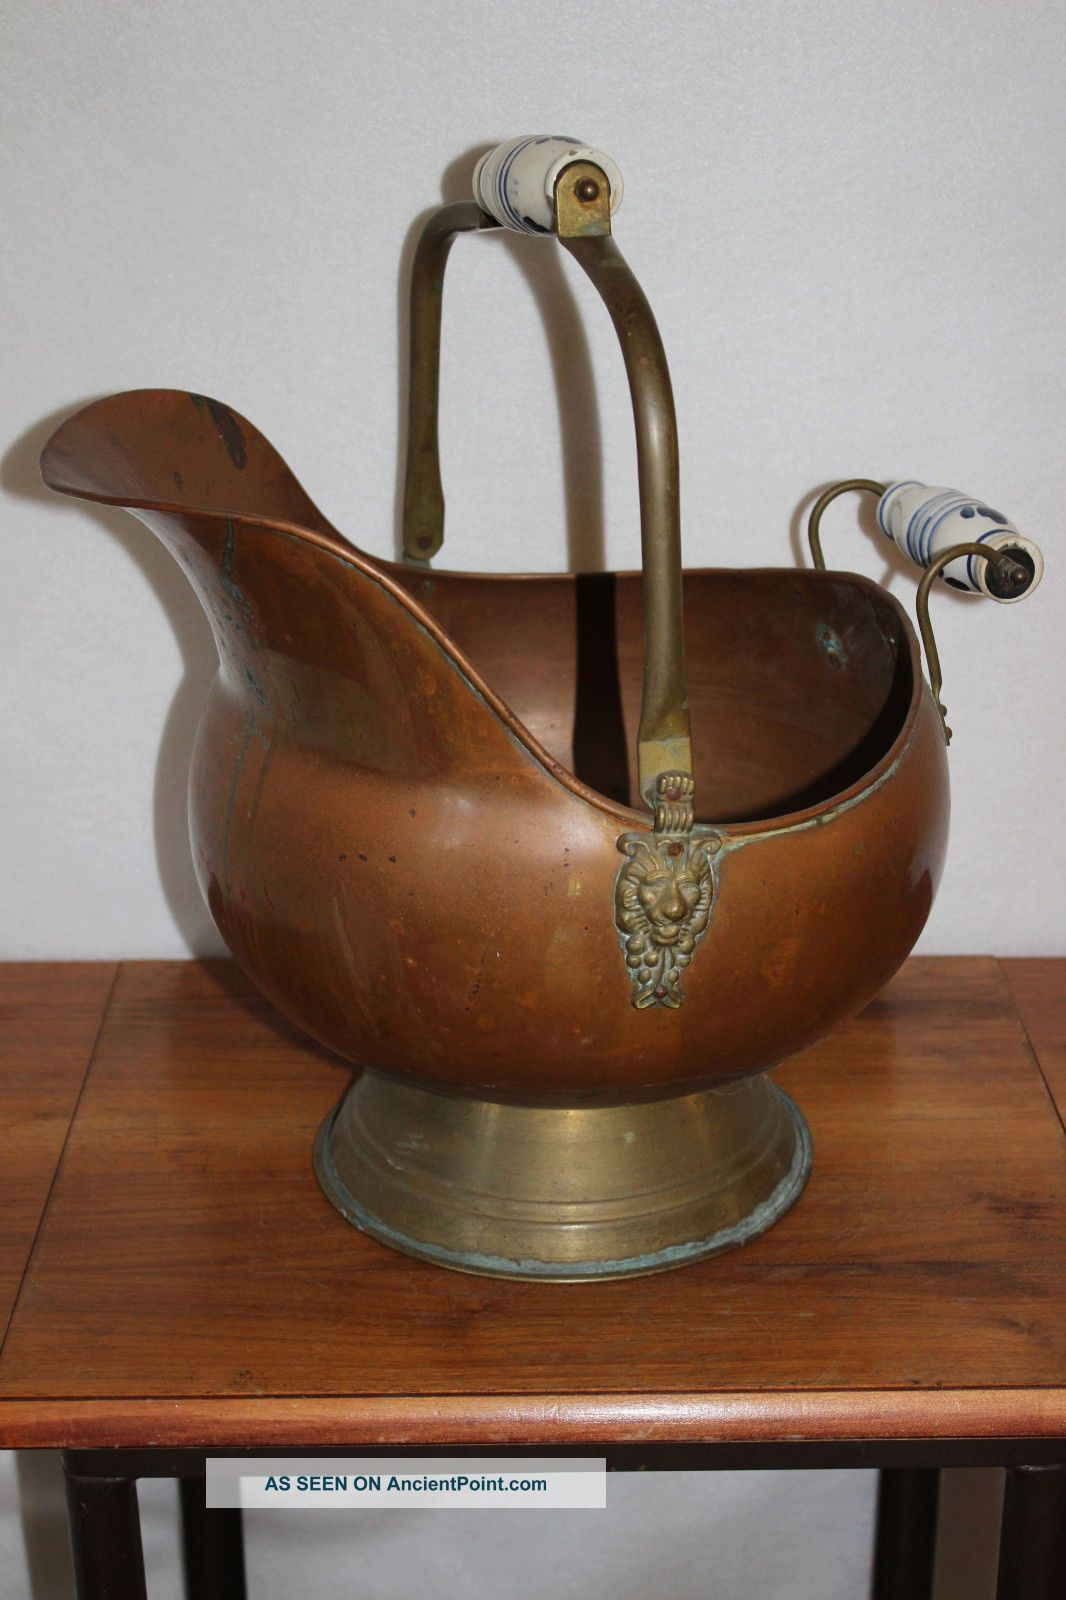 Antique Large Fireplace Ash Bucket / Coal Skuttle Copper Brass Hearth Ware Tool Hearth Ware photo